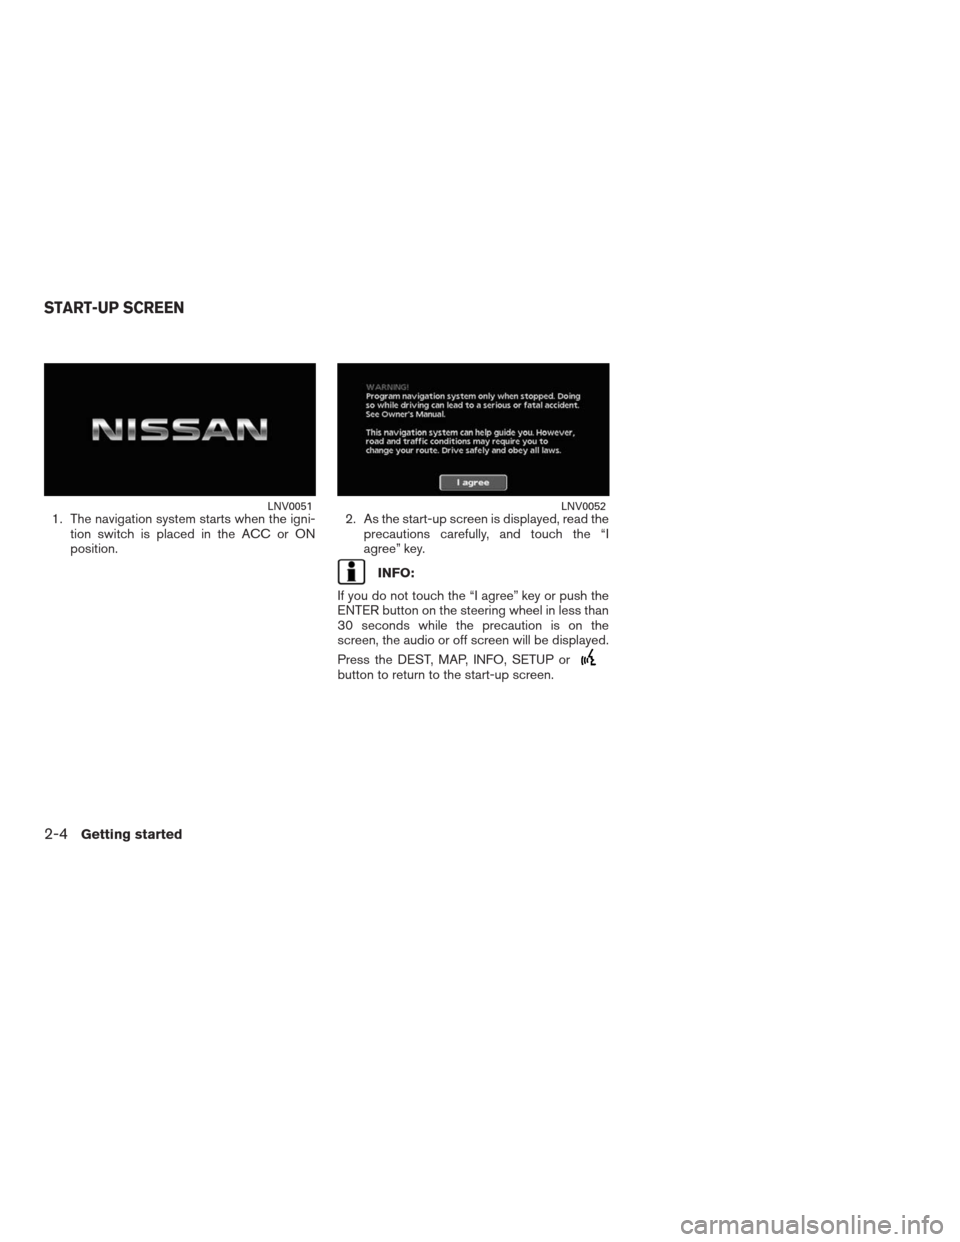 NISSAN ALTIMA HYBRID 2009 L32A / 4.G Navigation Manual, Page 11